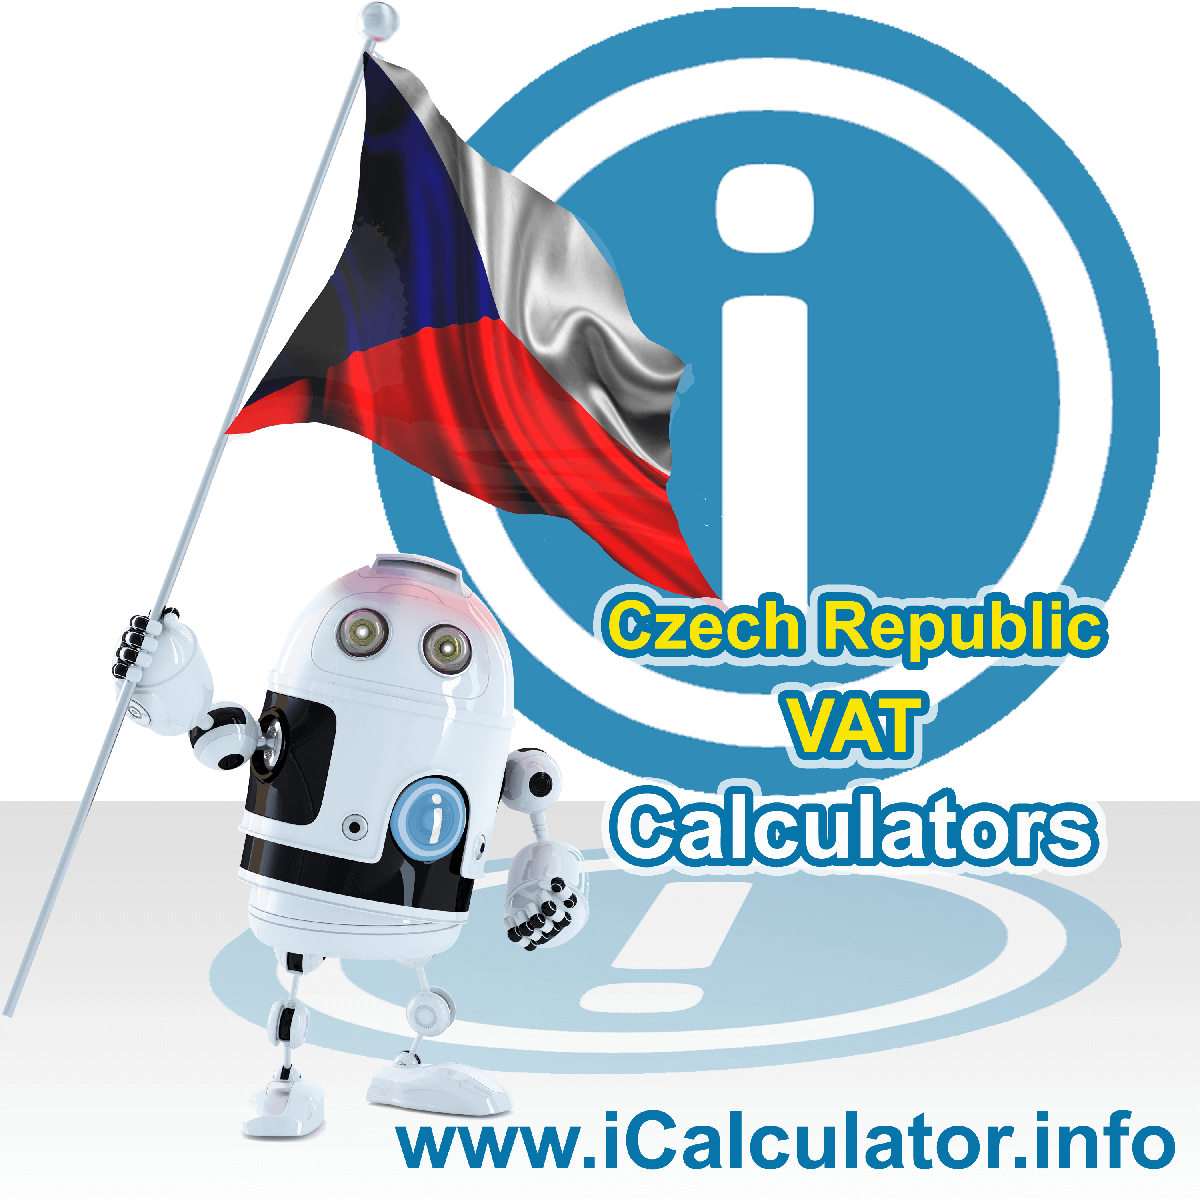 Czech Republic VAT Calculator. This image shows the Czech Republic flag and information relating to the VAT formula used for calculating Value Added Tax in Czech Republic using the Czech Republic VAT Calculator in 2020